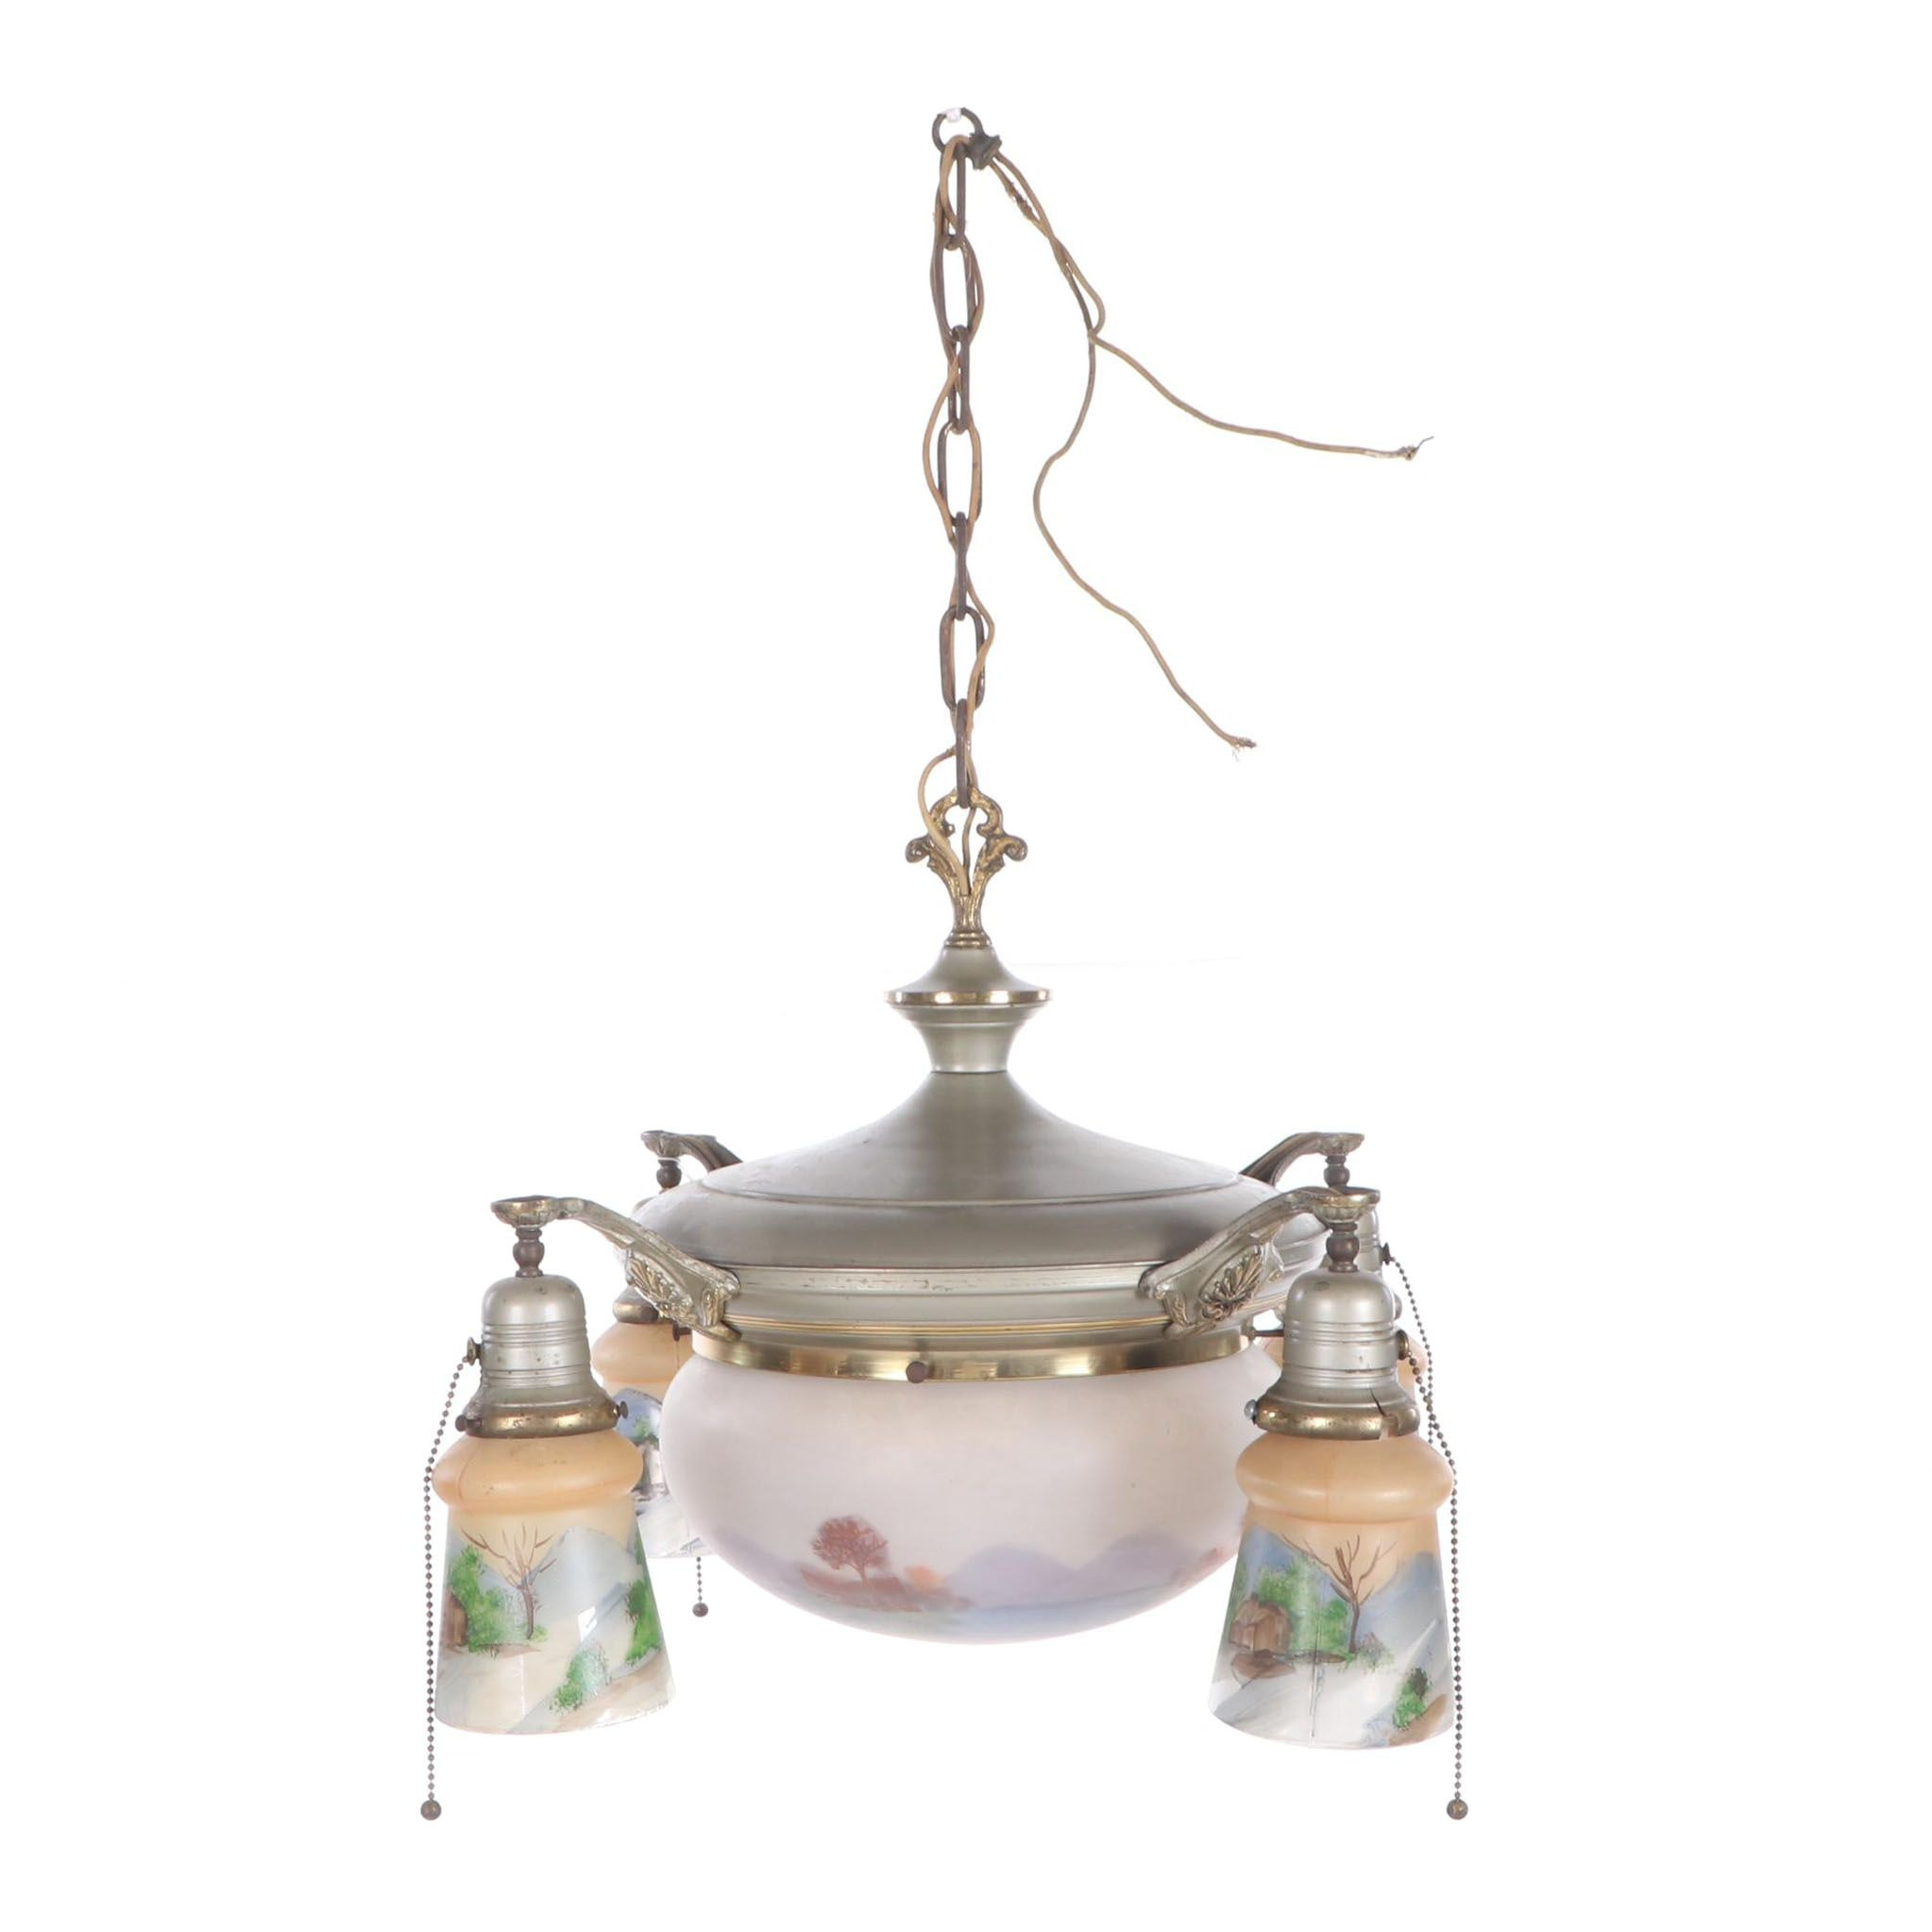 Metal Chandelier with Hand-Painted Glass Shades, Mid 20th Century